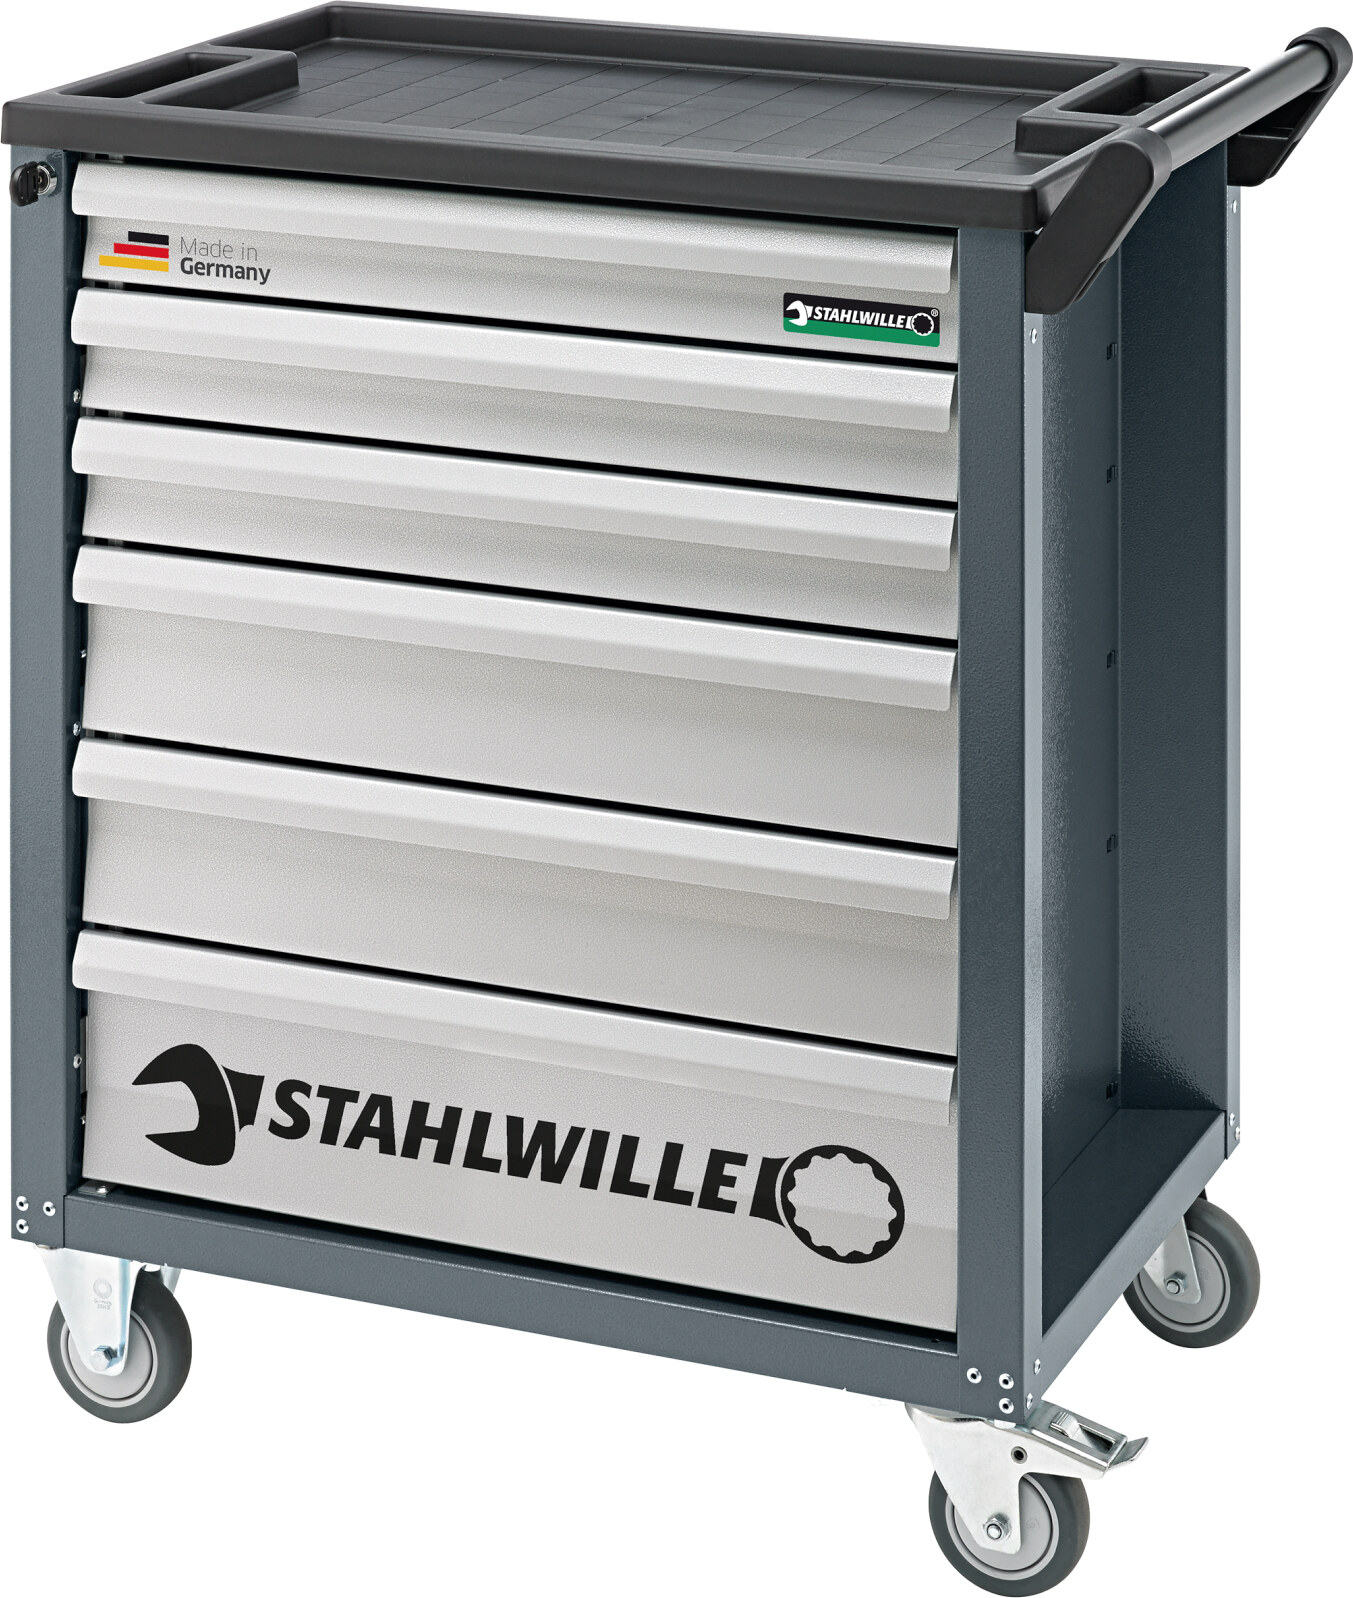 Stahlwille Tool Trolley 6 Drawers Charcoal Grey, RAL 7016